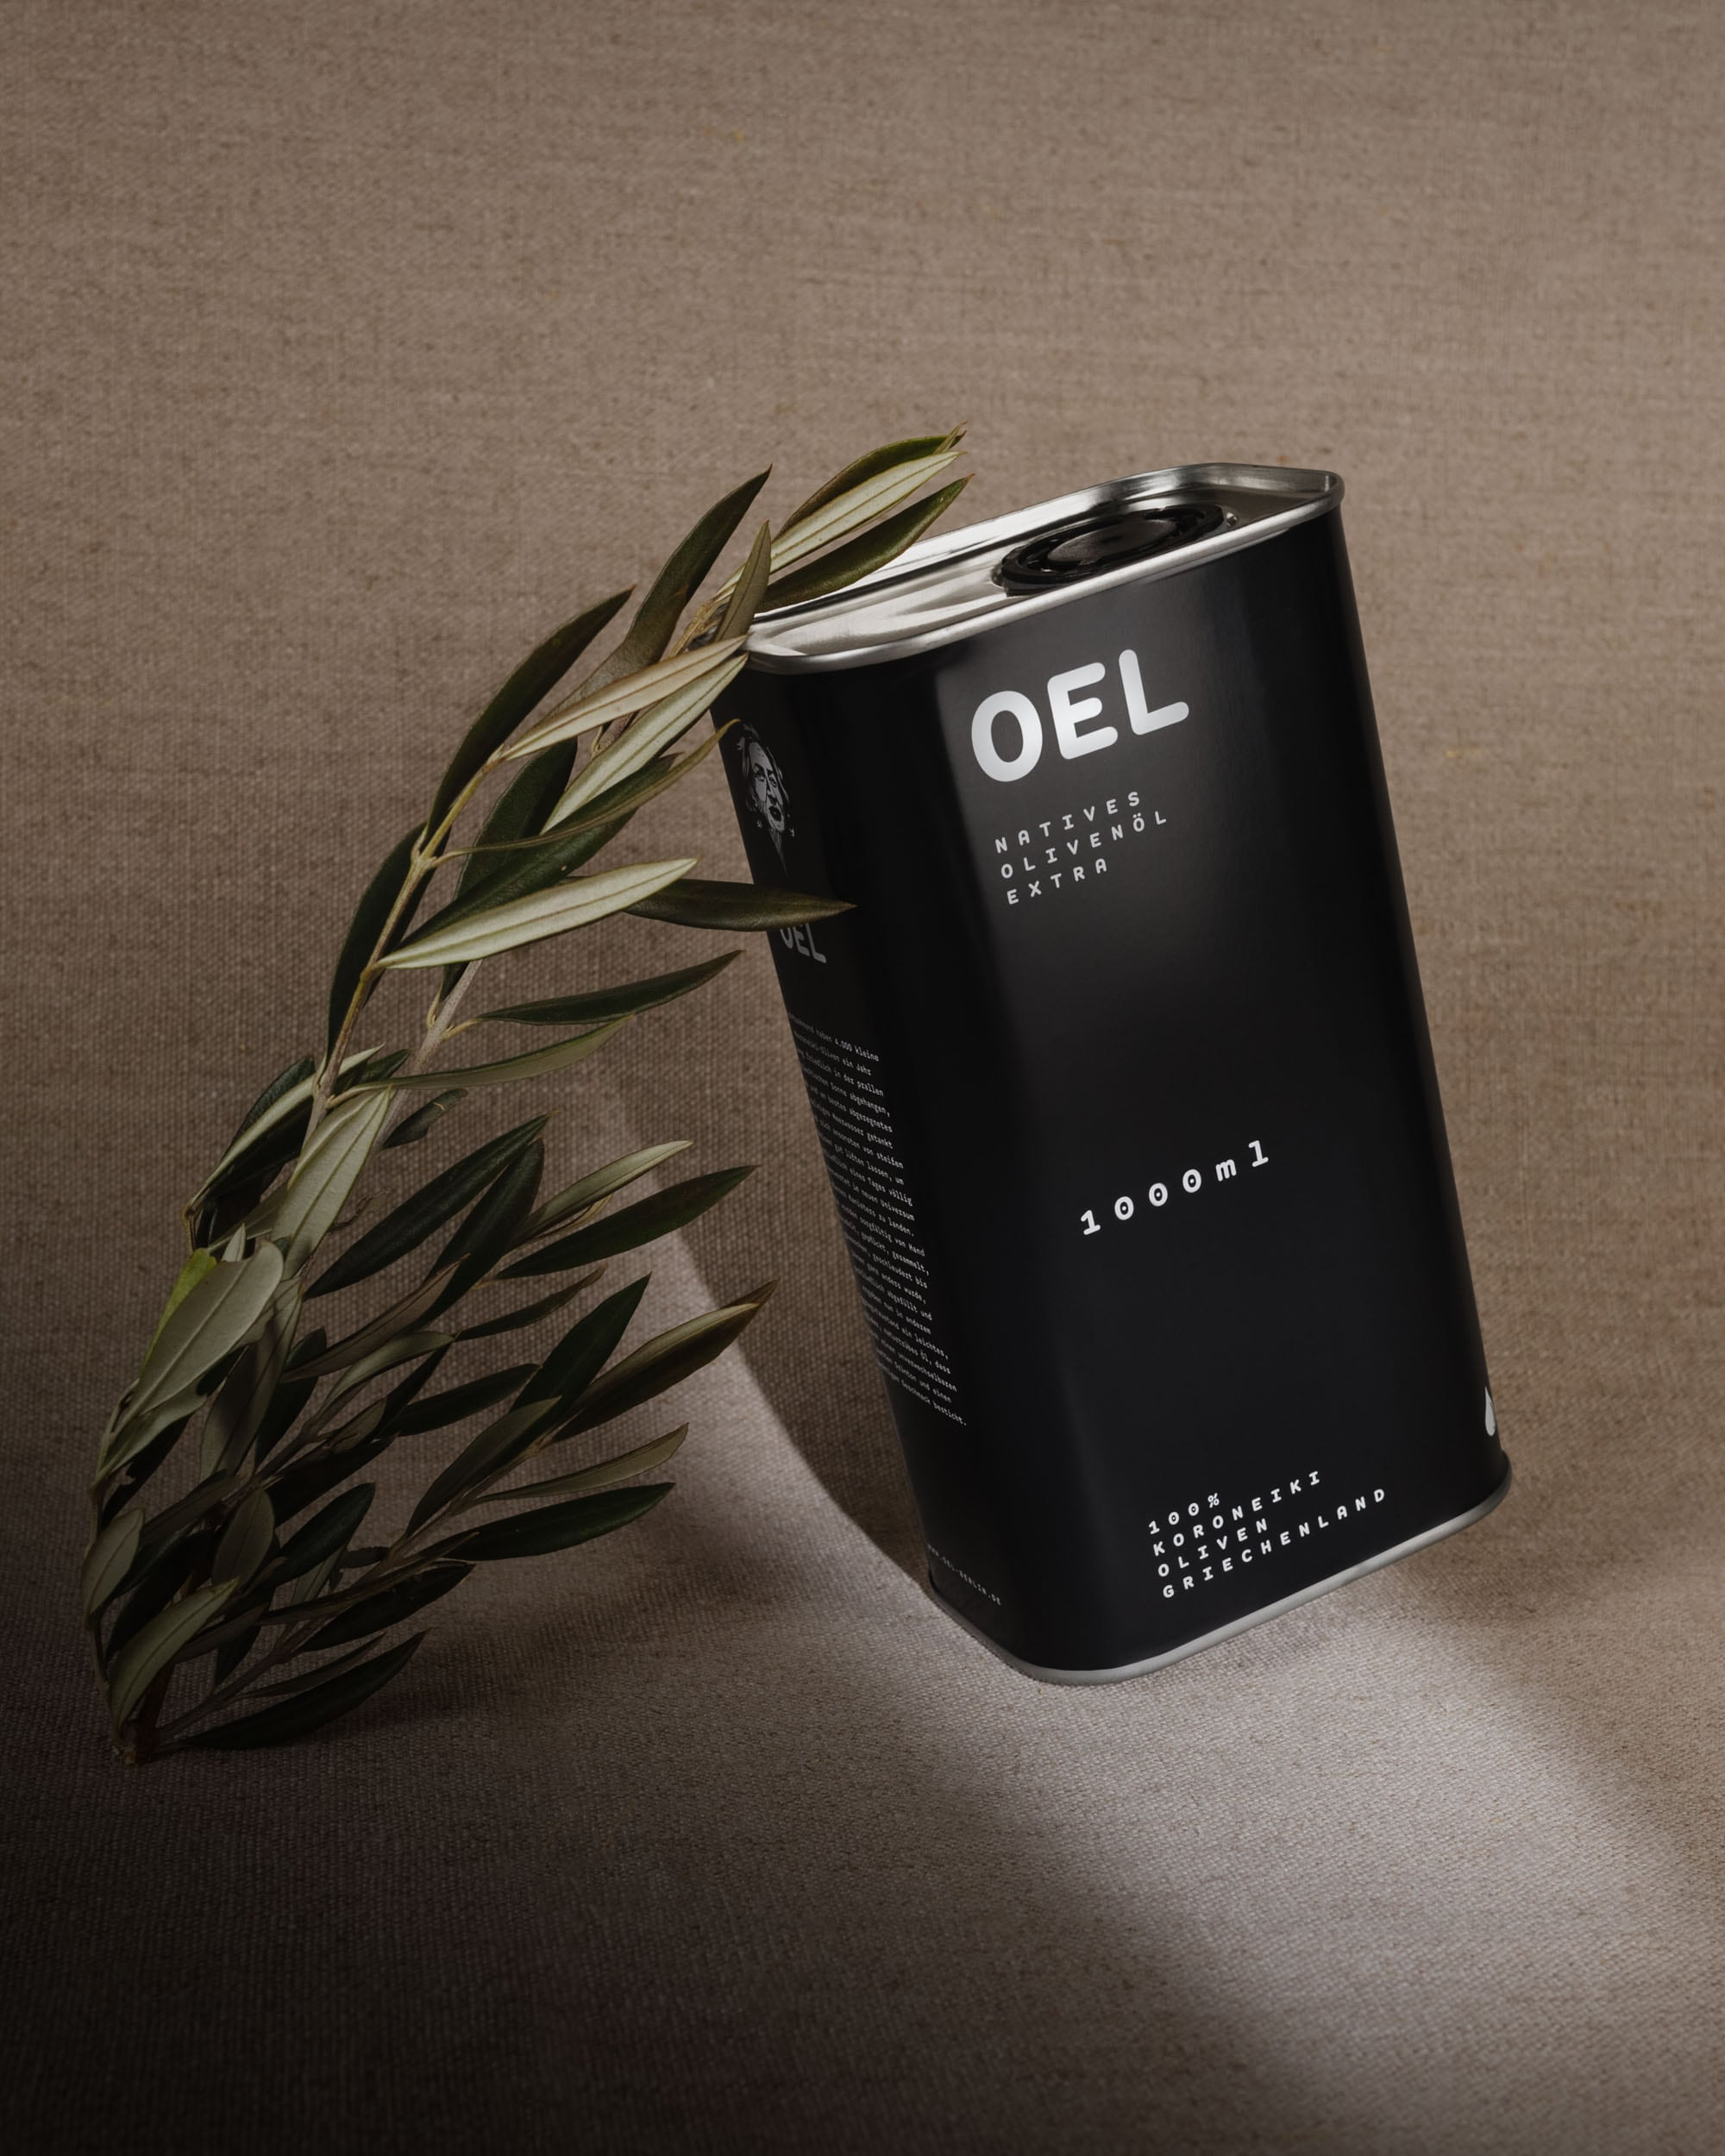 1000ml OEL canister leaning on an olive branch.